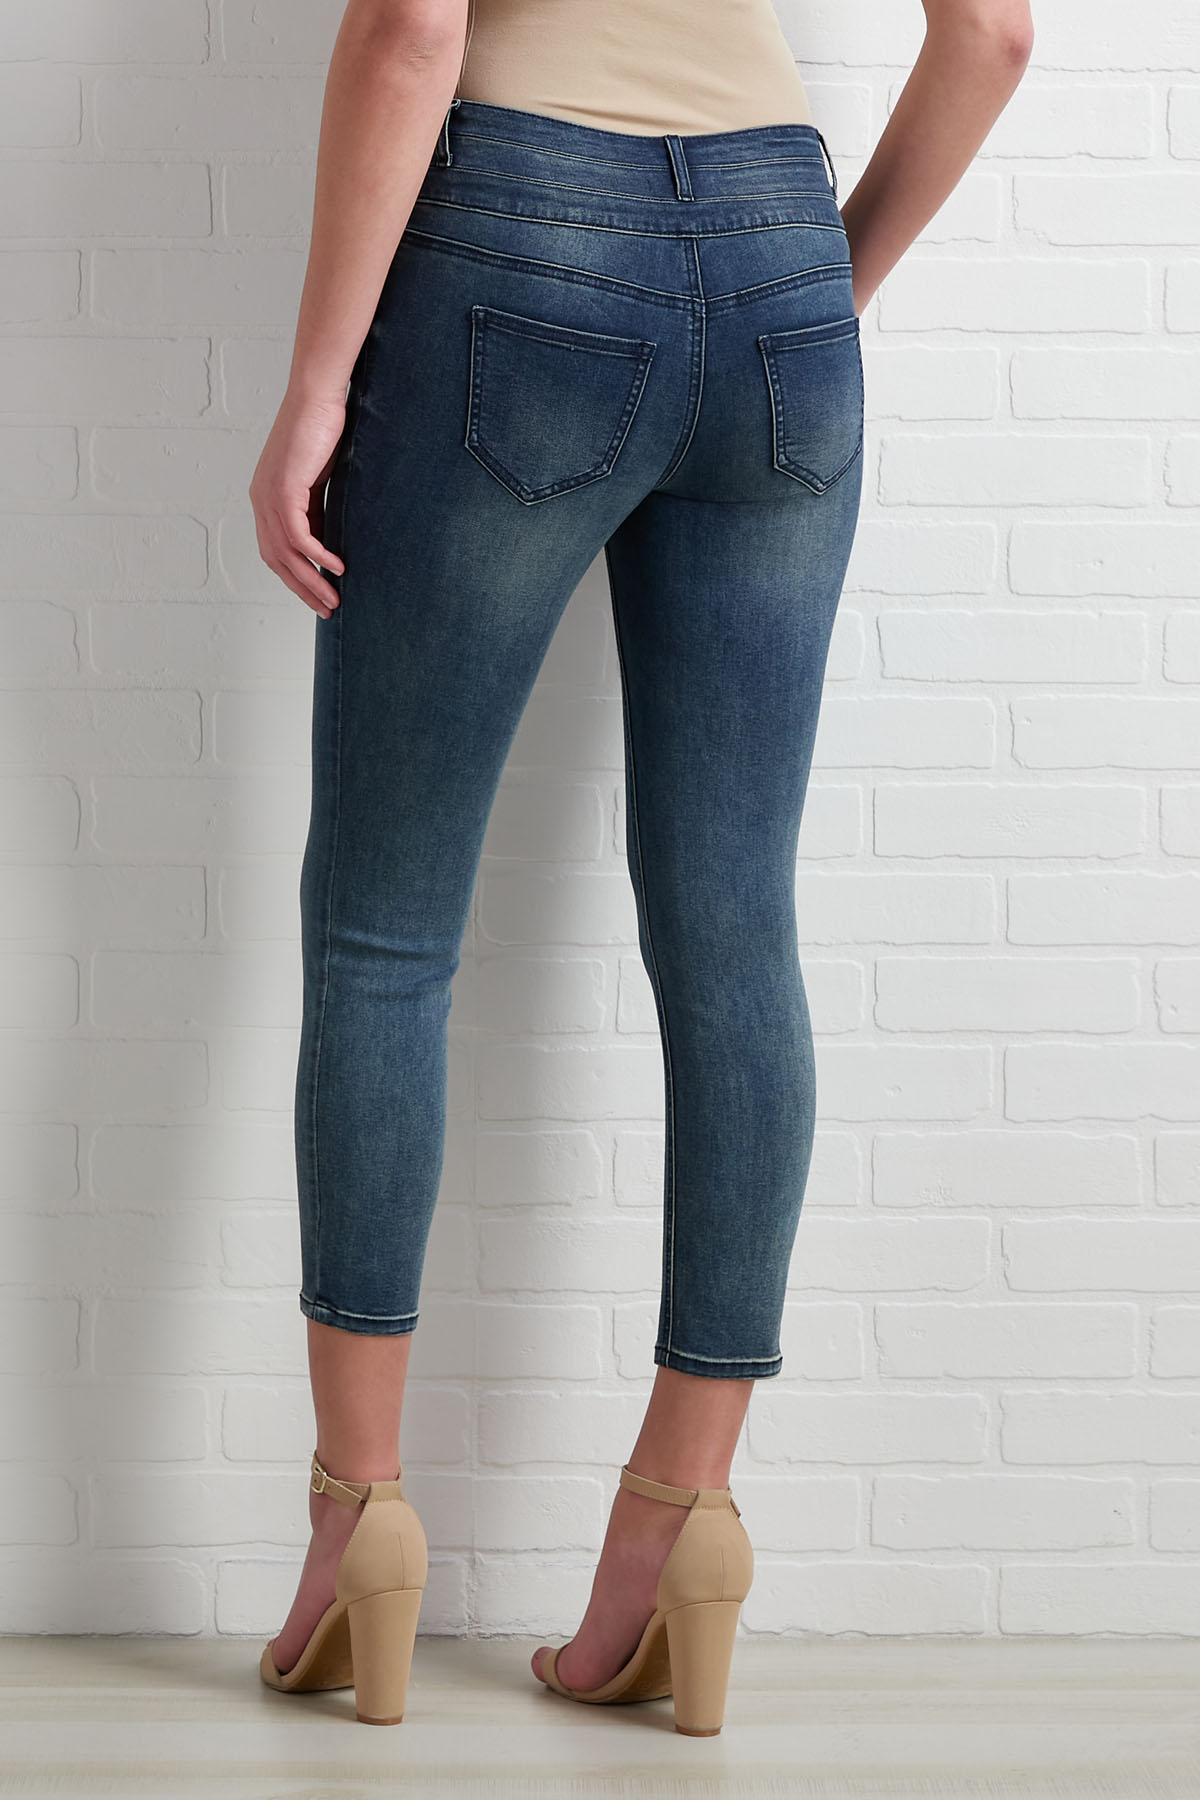 Short And Sweet Jeans